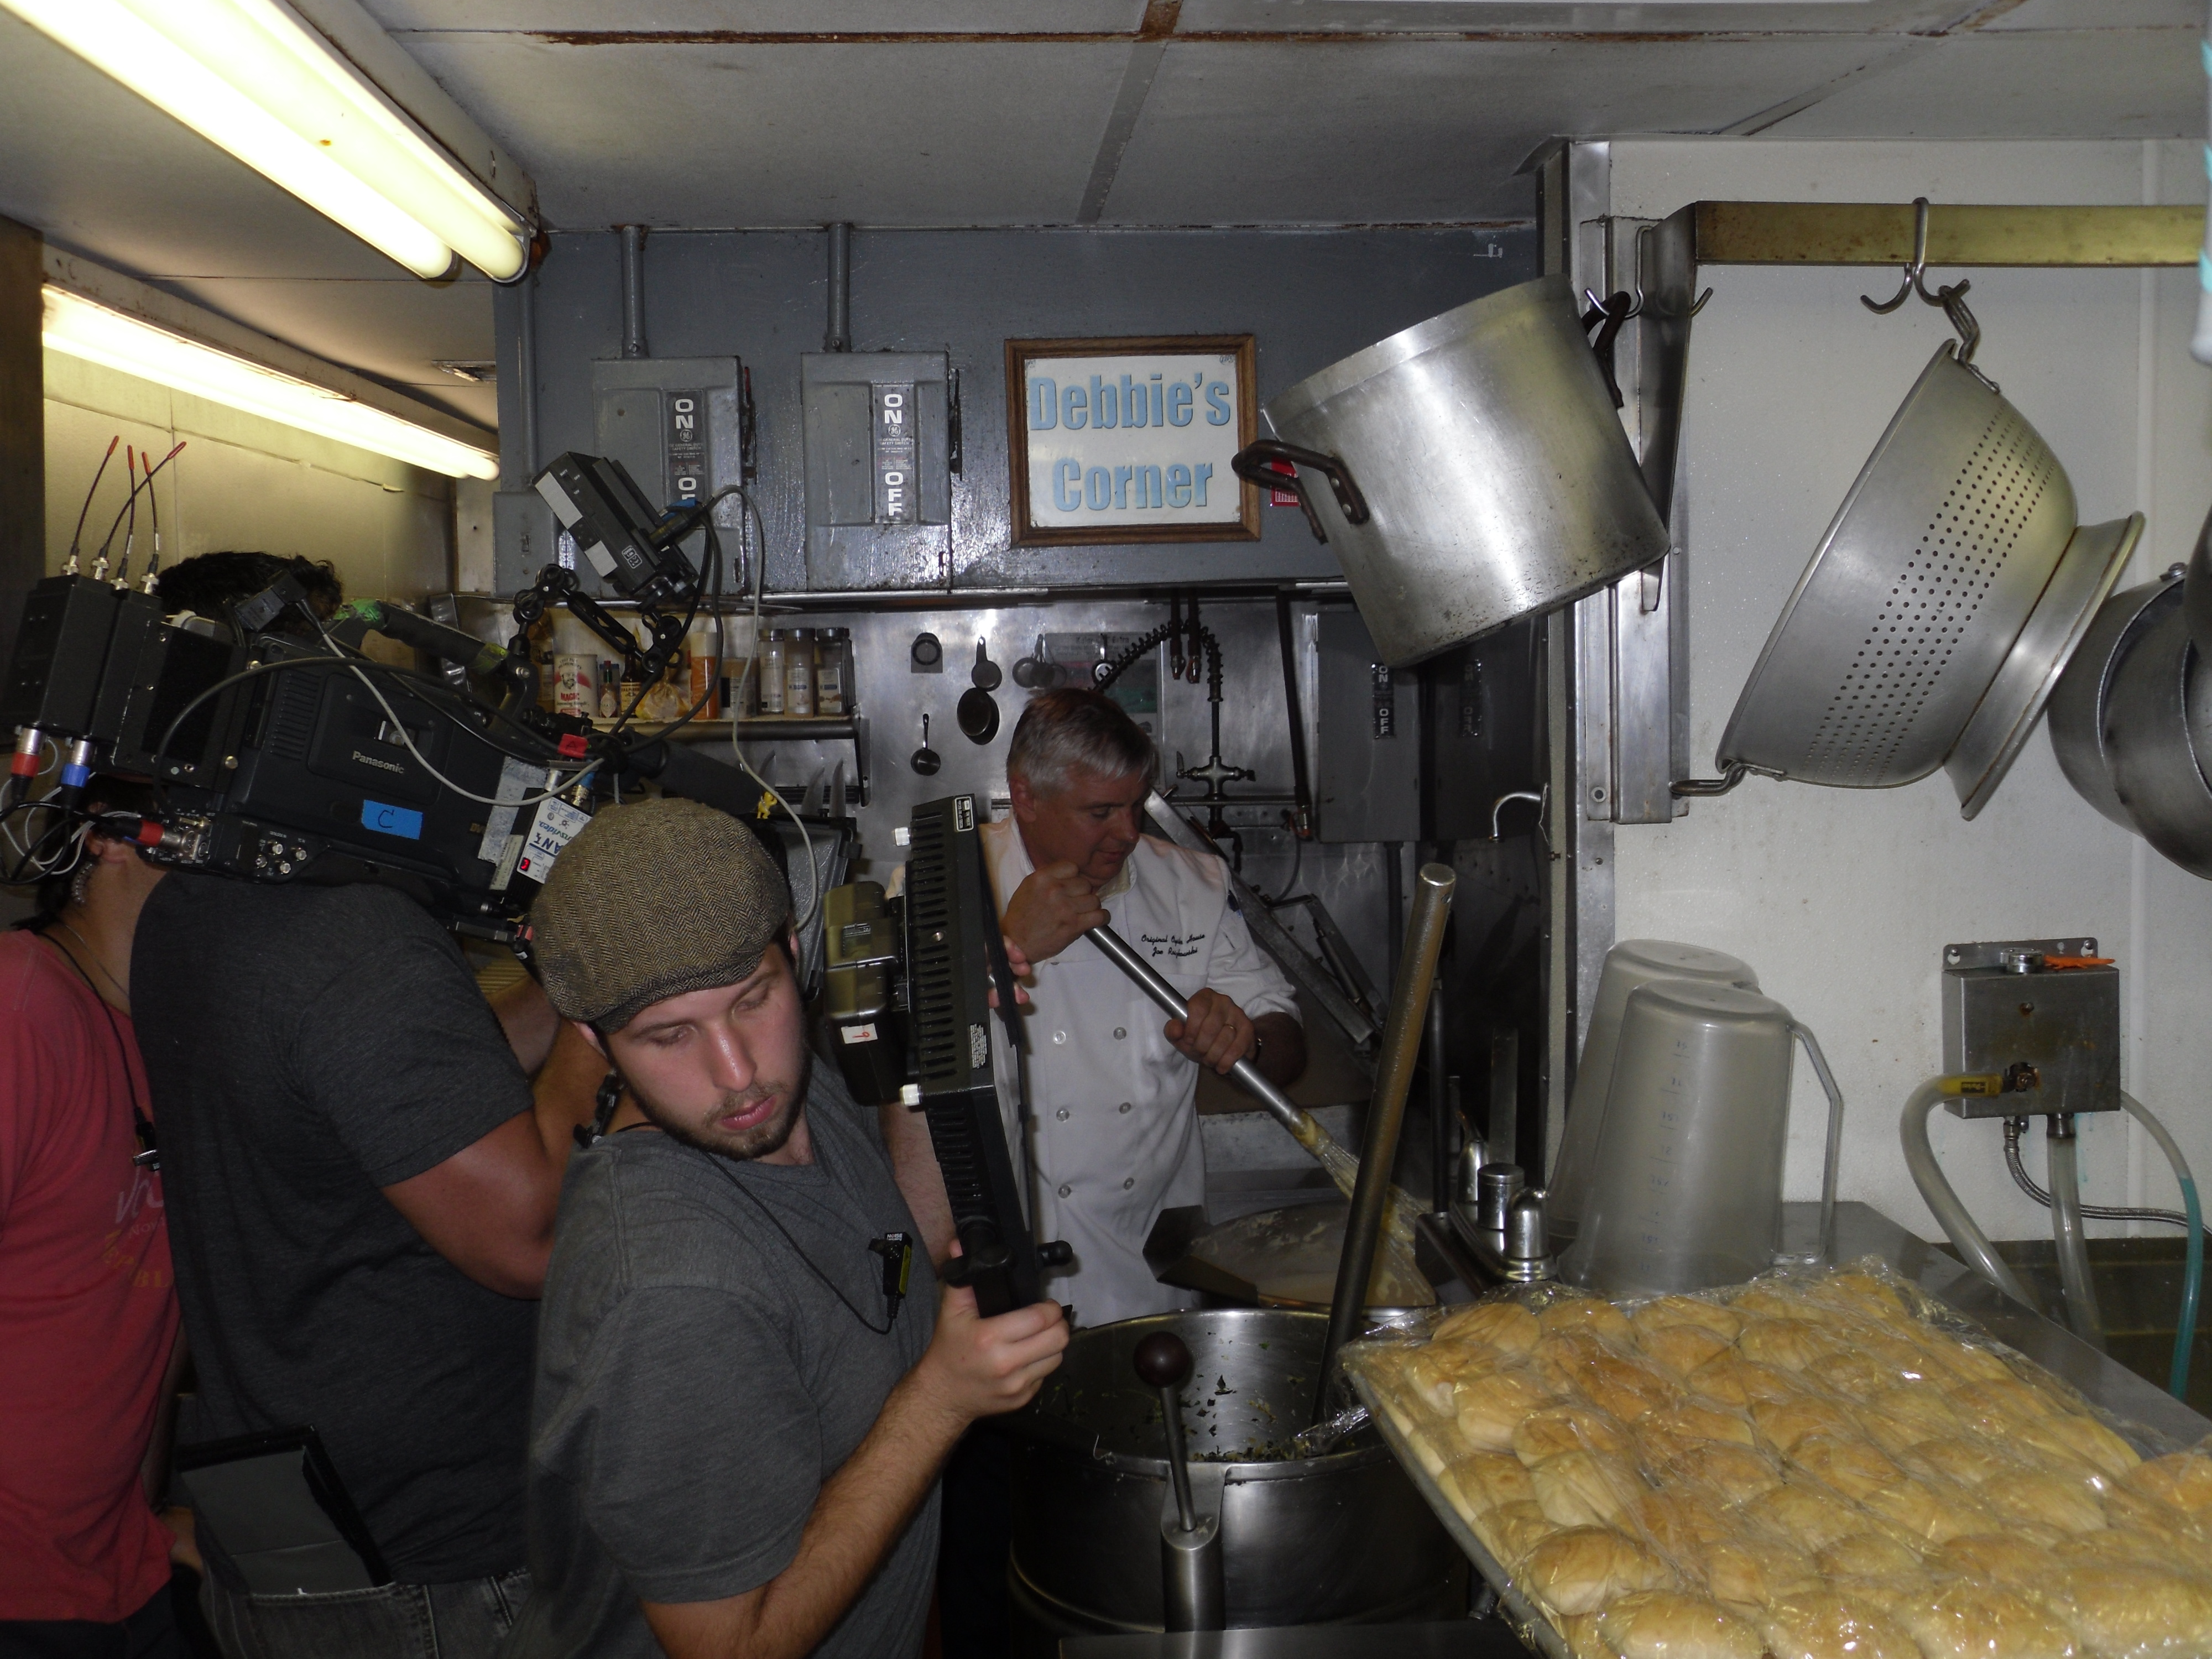 camera crew filming in OOH kitchen